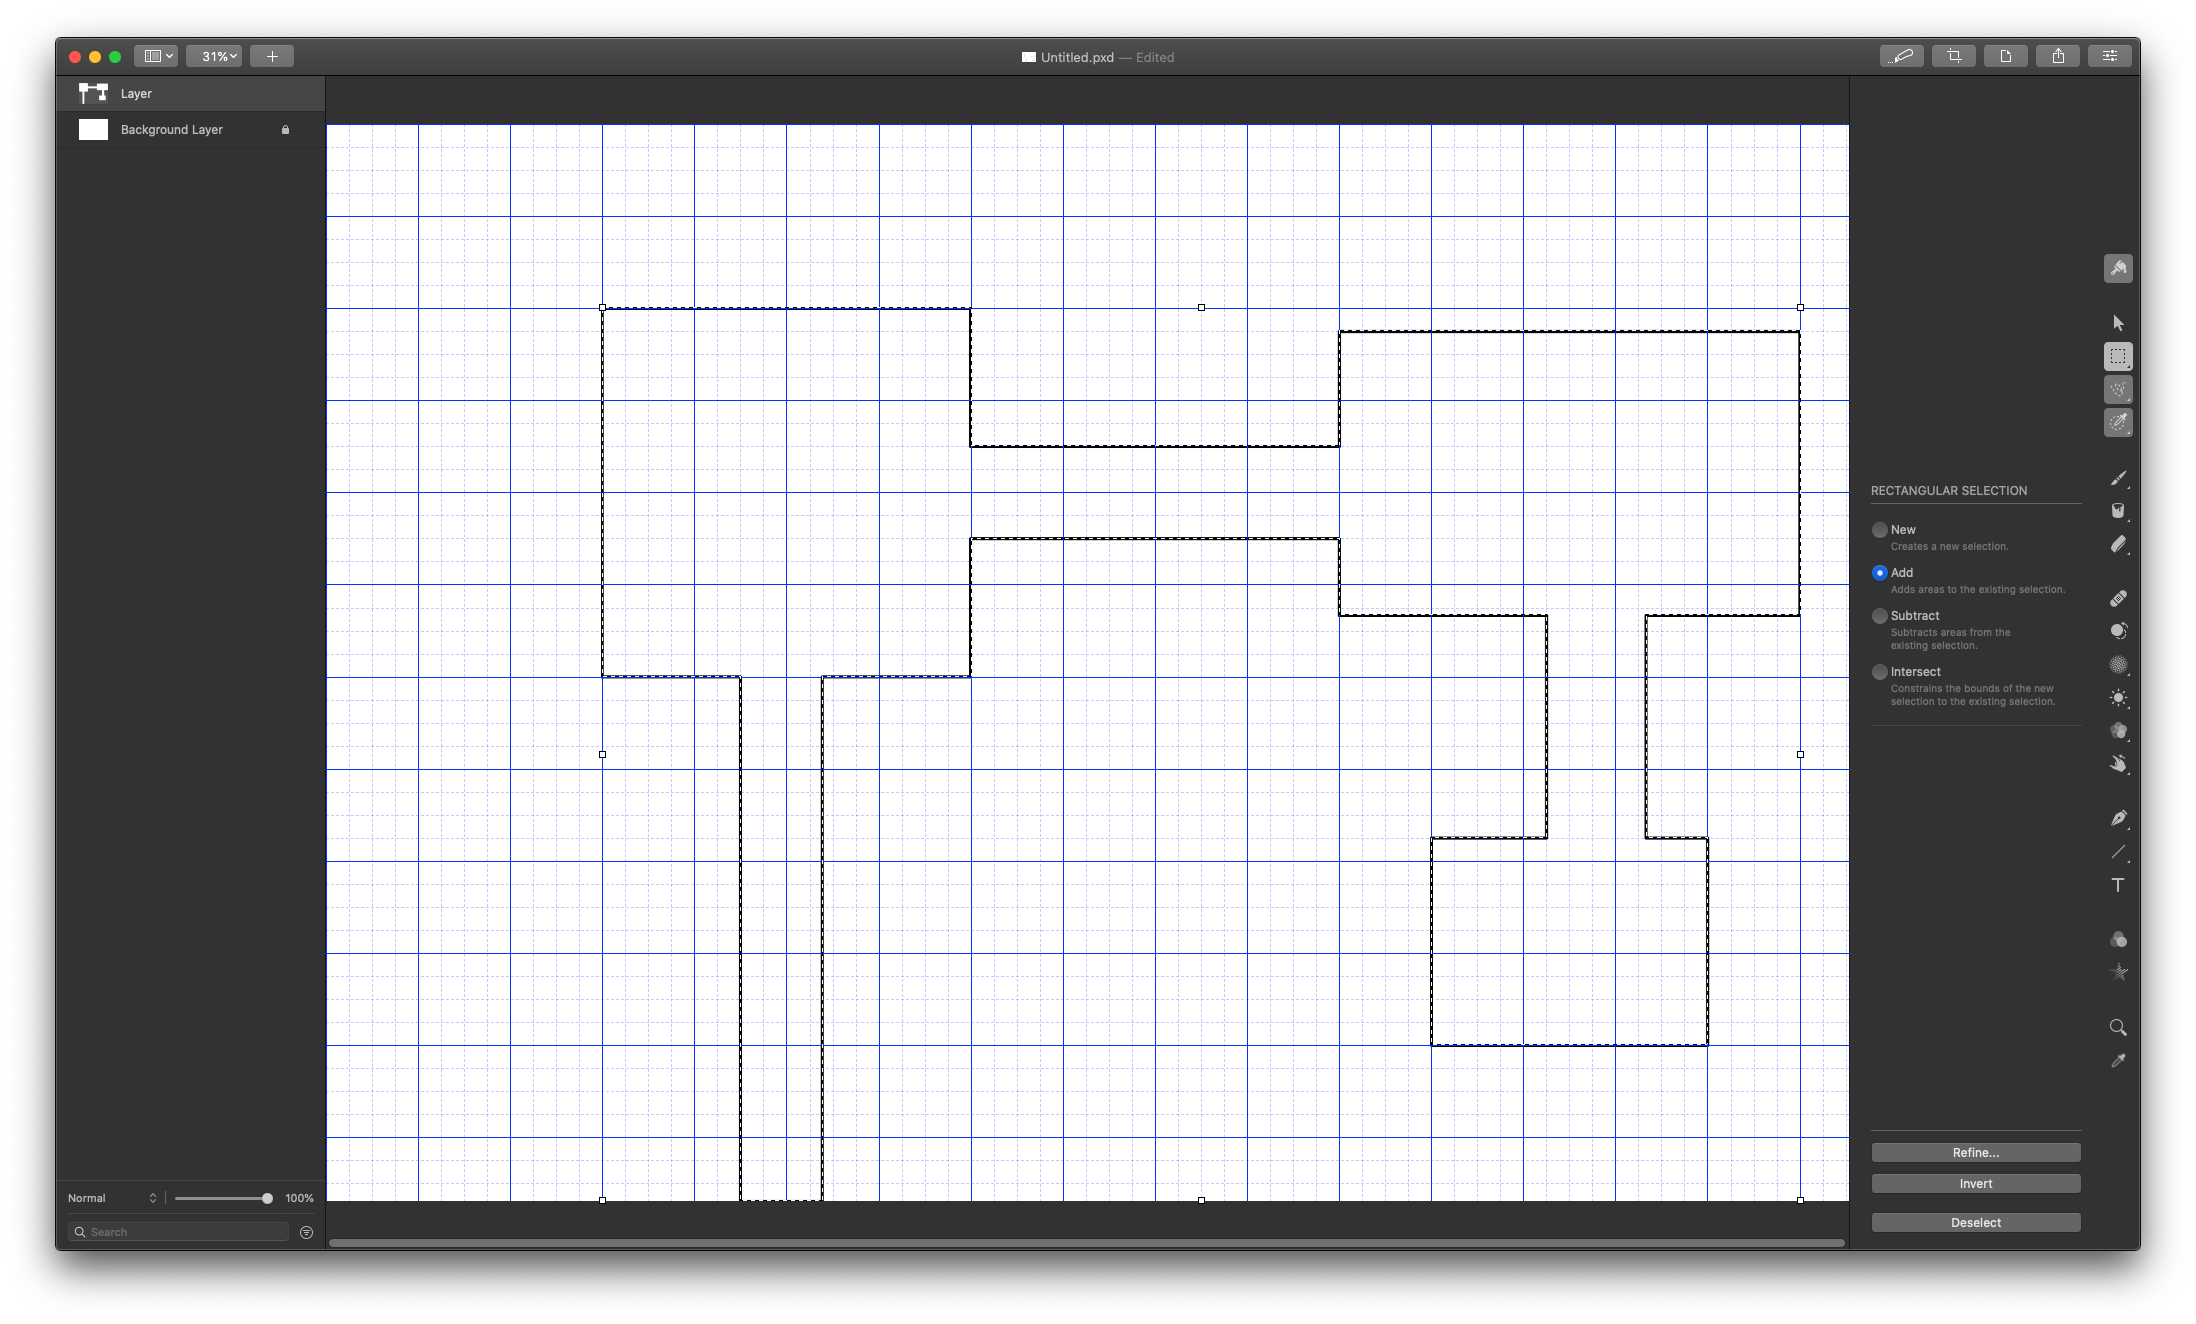 A simple layout created with the selection tool